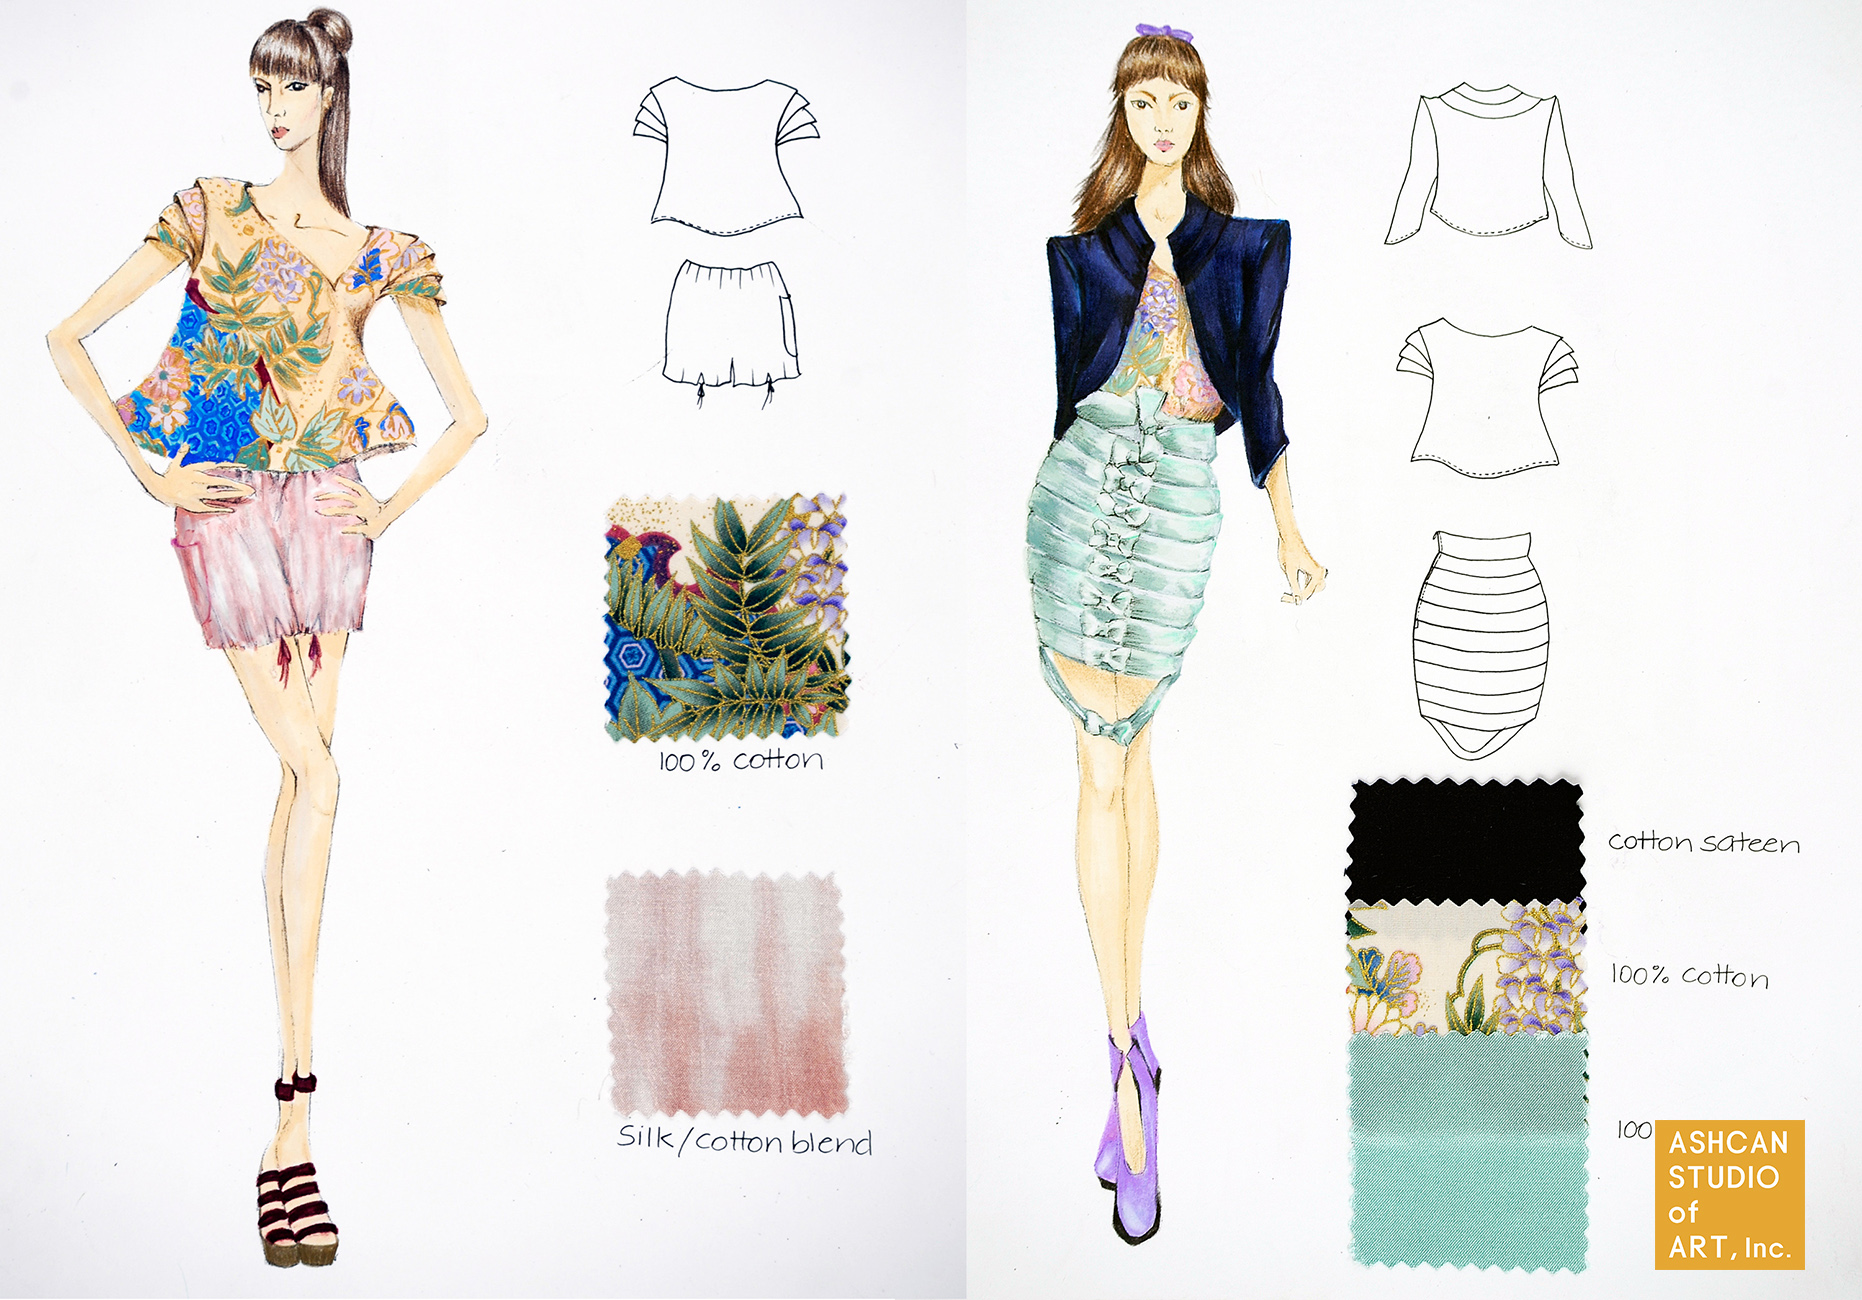 ashcan studio of art ashcan studio student work for fit fashion design admissions by kisa